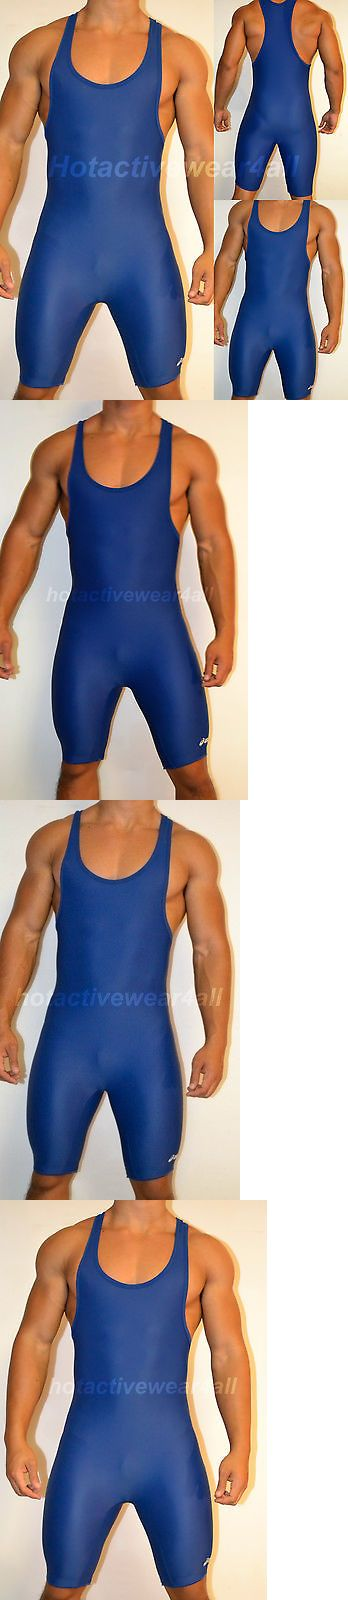 Clothing 79796: New Asics Adult Mens Wrestling Singlet All Sizes, Solid Royal Blue Jt200 S M L -> BUY IT NOW ONLY: $34.03 on eBay!